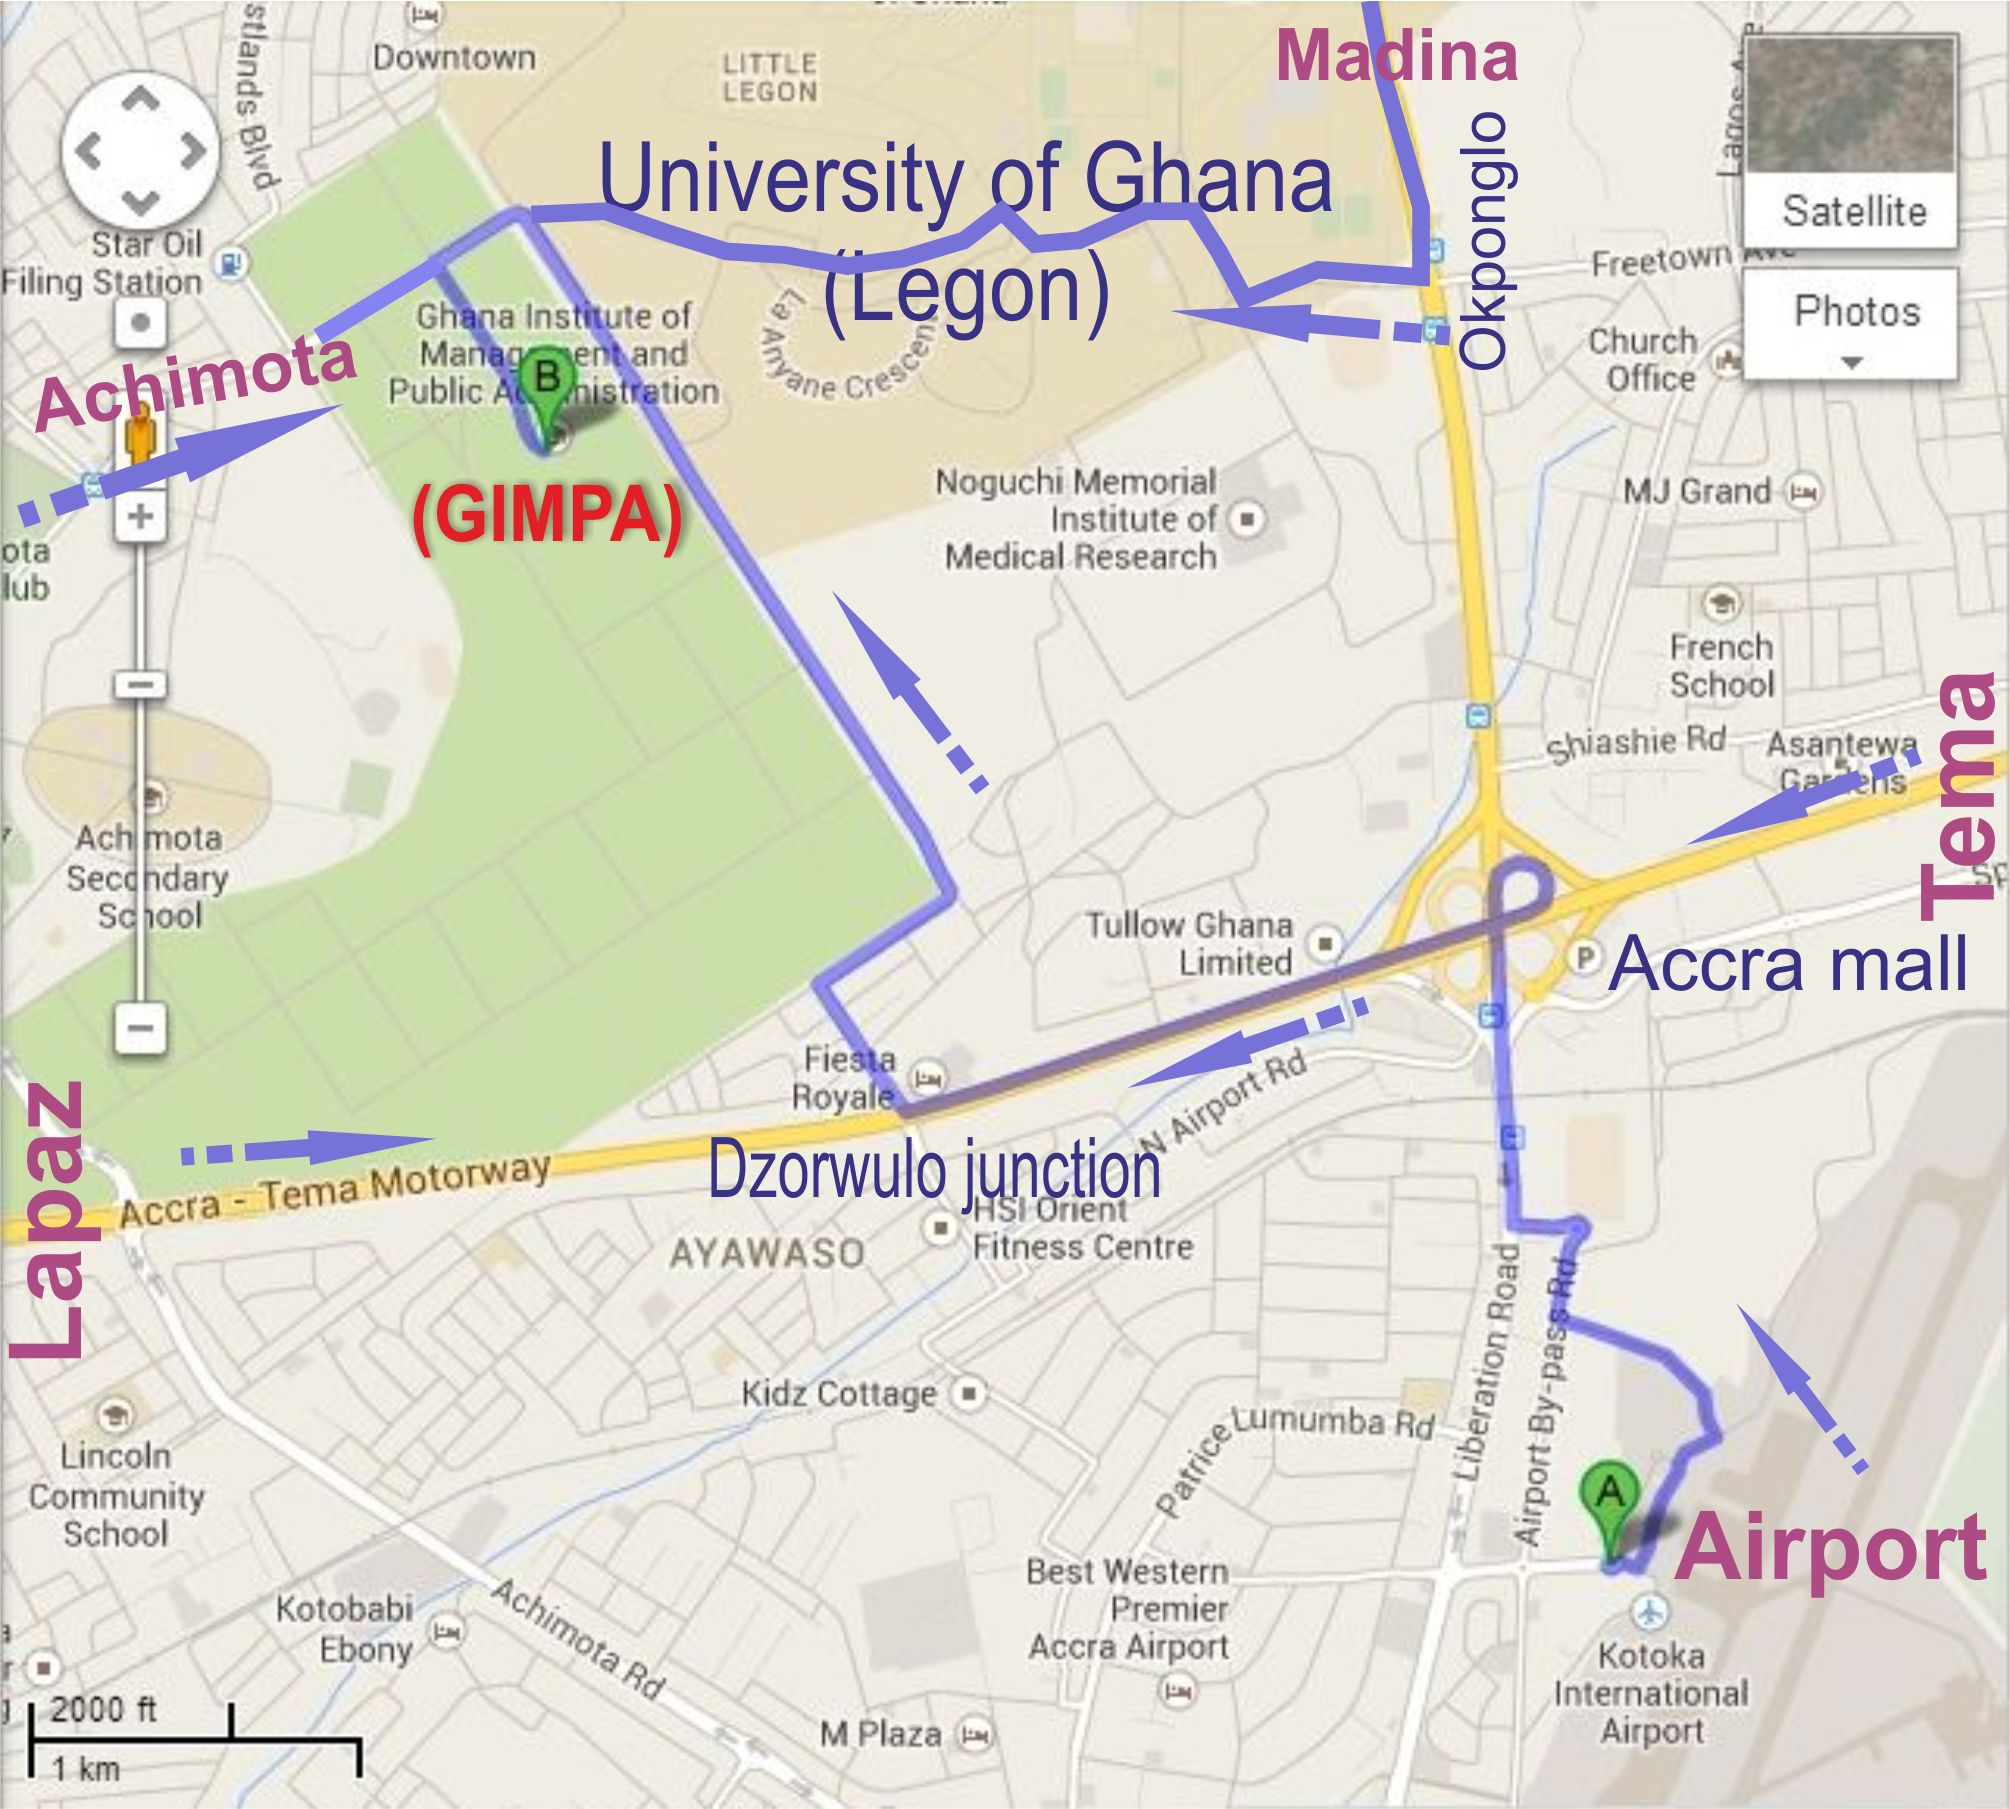 Directions to GIMPA